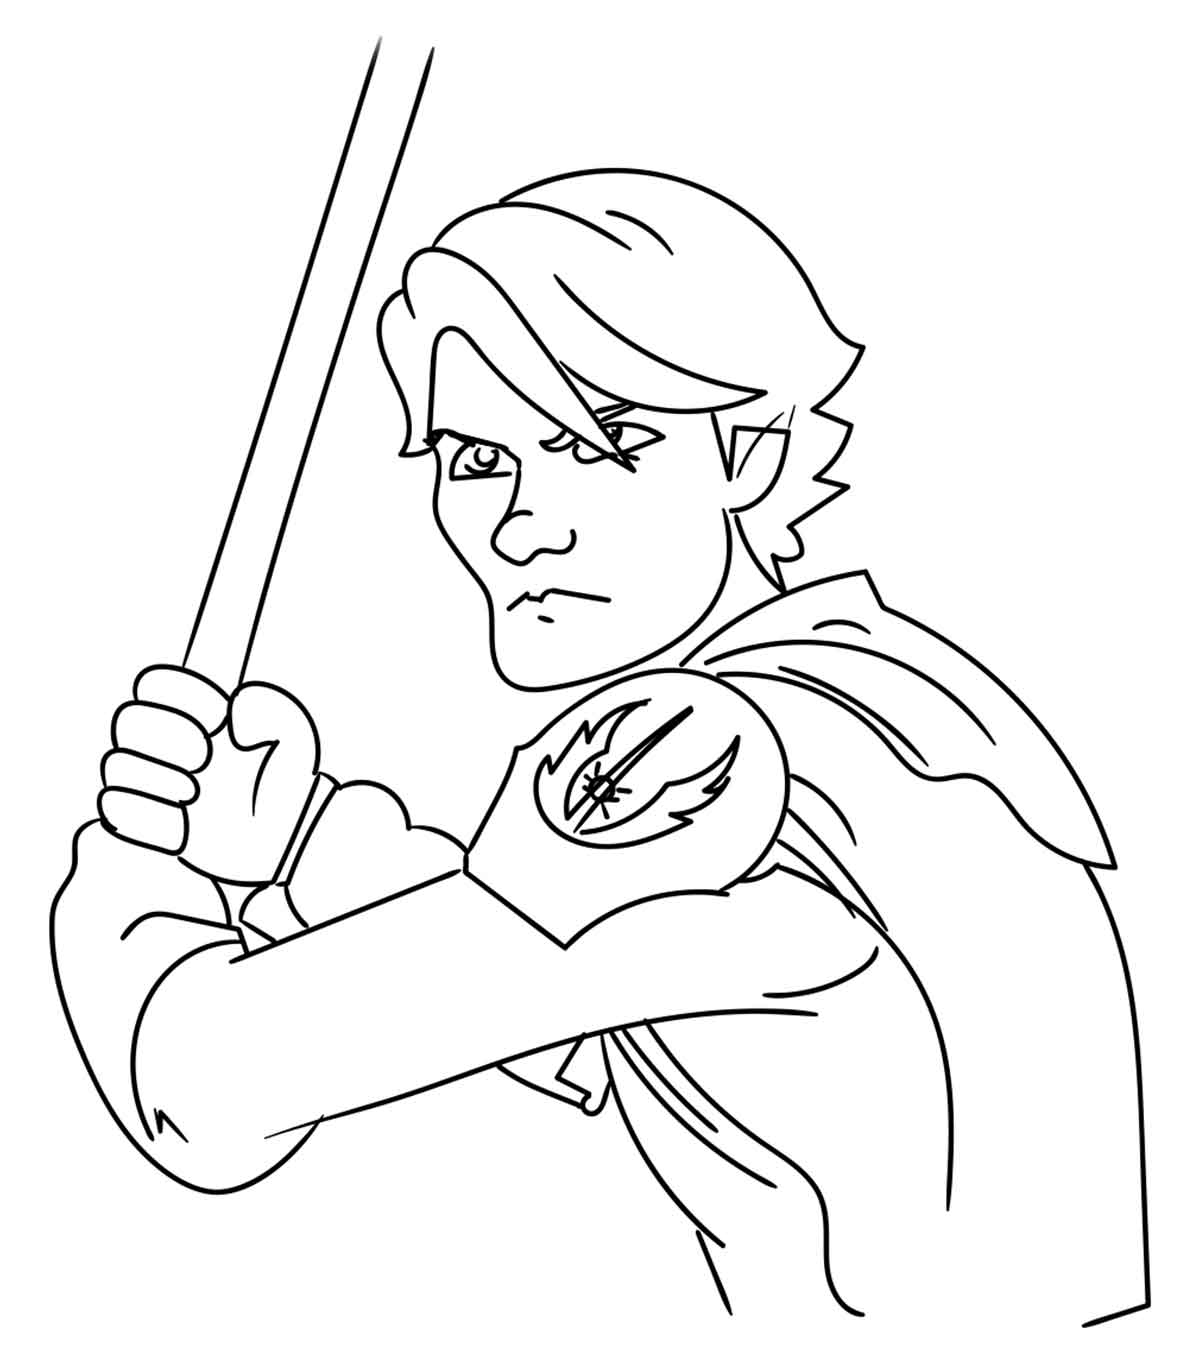 star wars colouring for kids star wars coloring pages coloring pages for children wars colouring kids star for